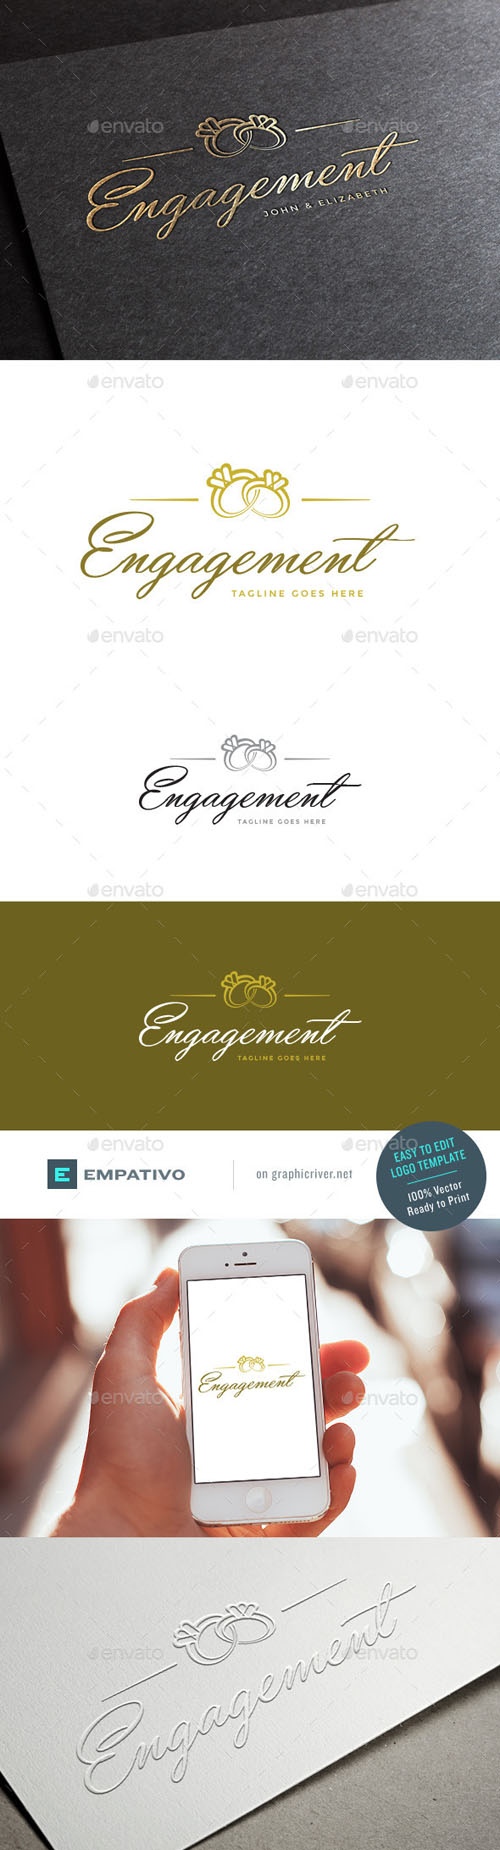 Engagement Logo Template 11098119